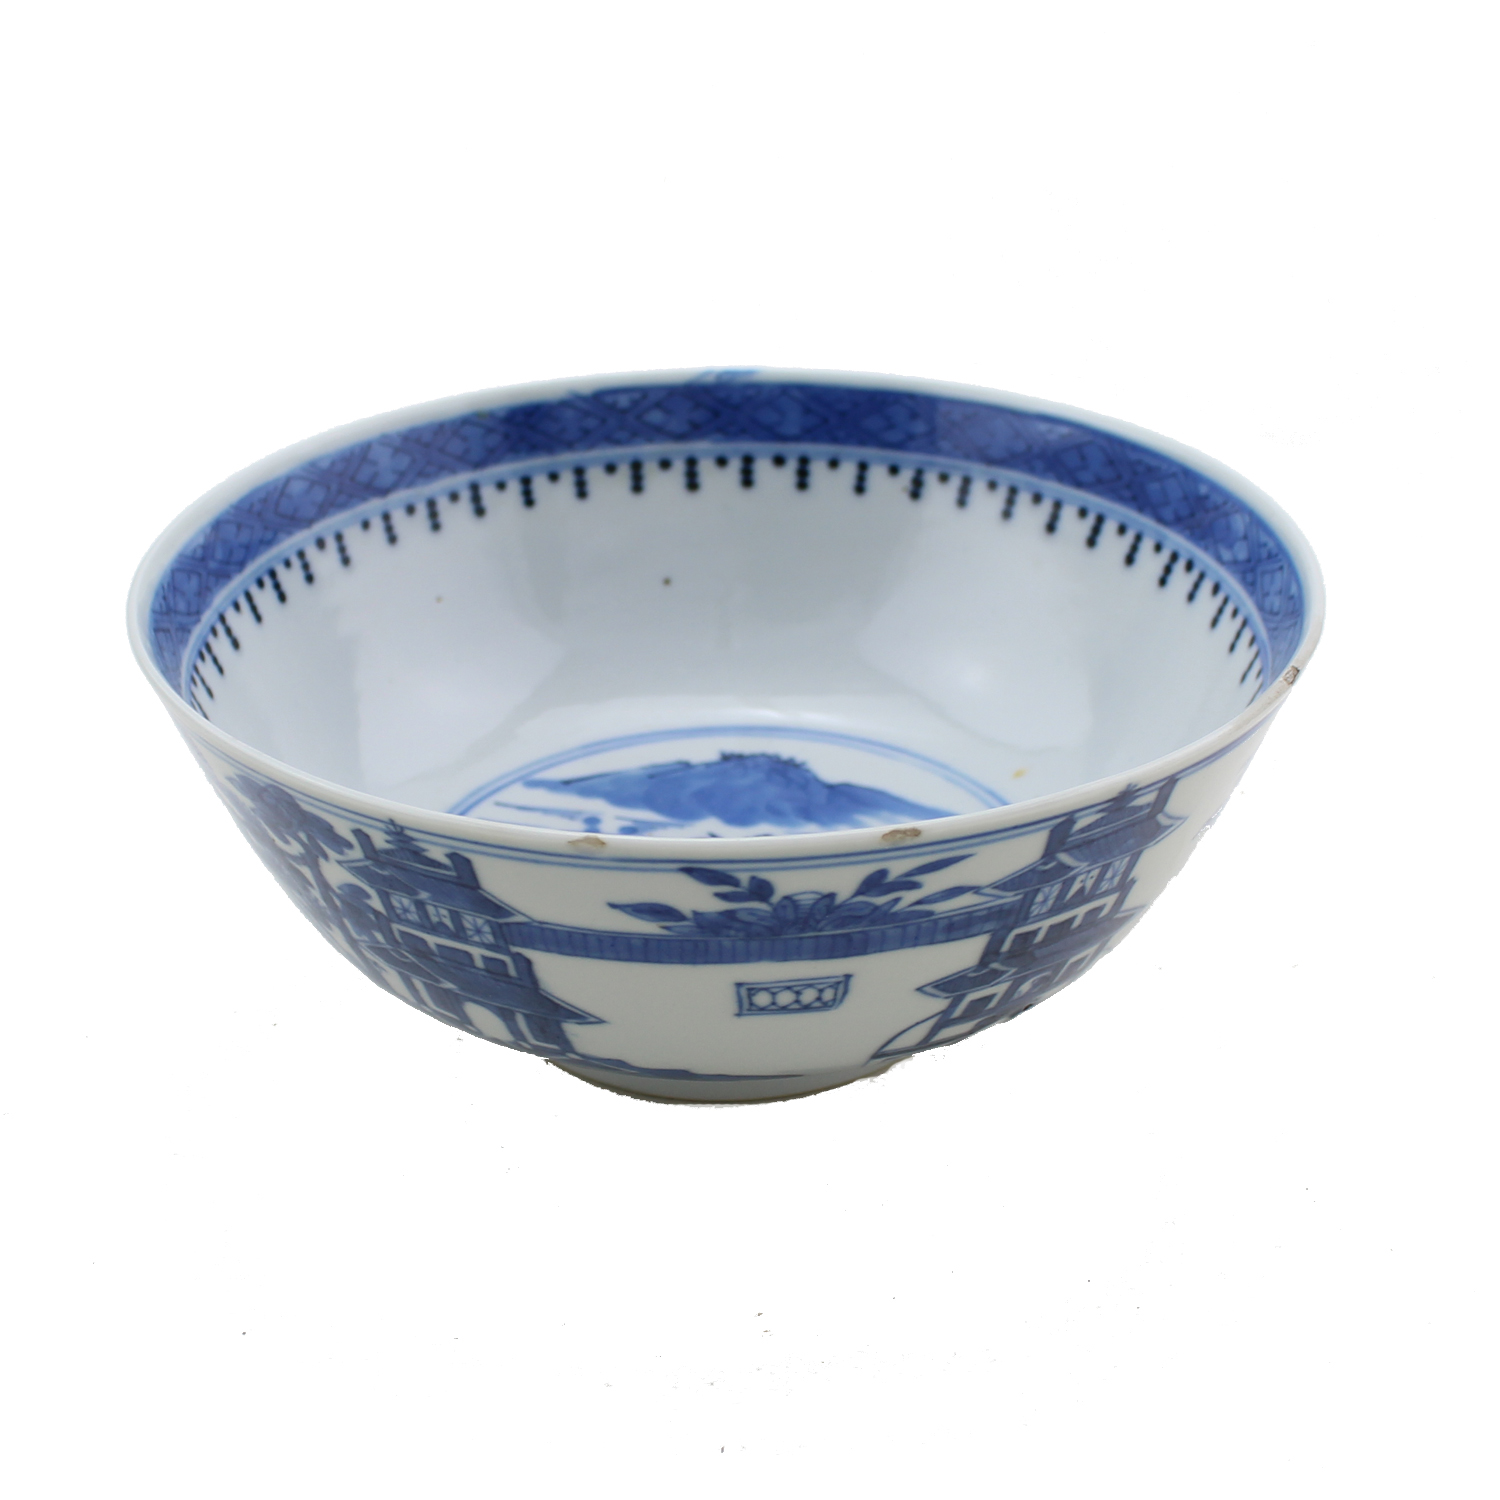 Chinese Blue and White Bowl, Depicting Landscape, circa 1800